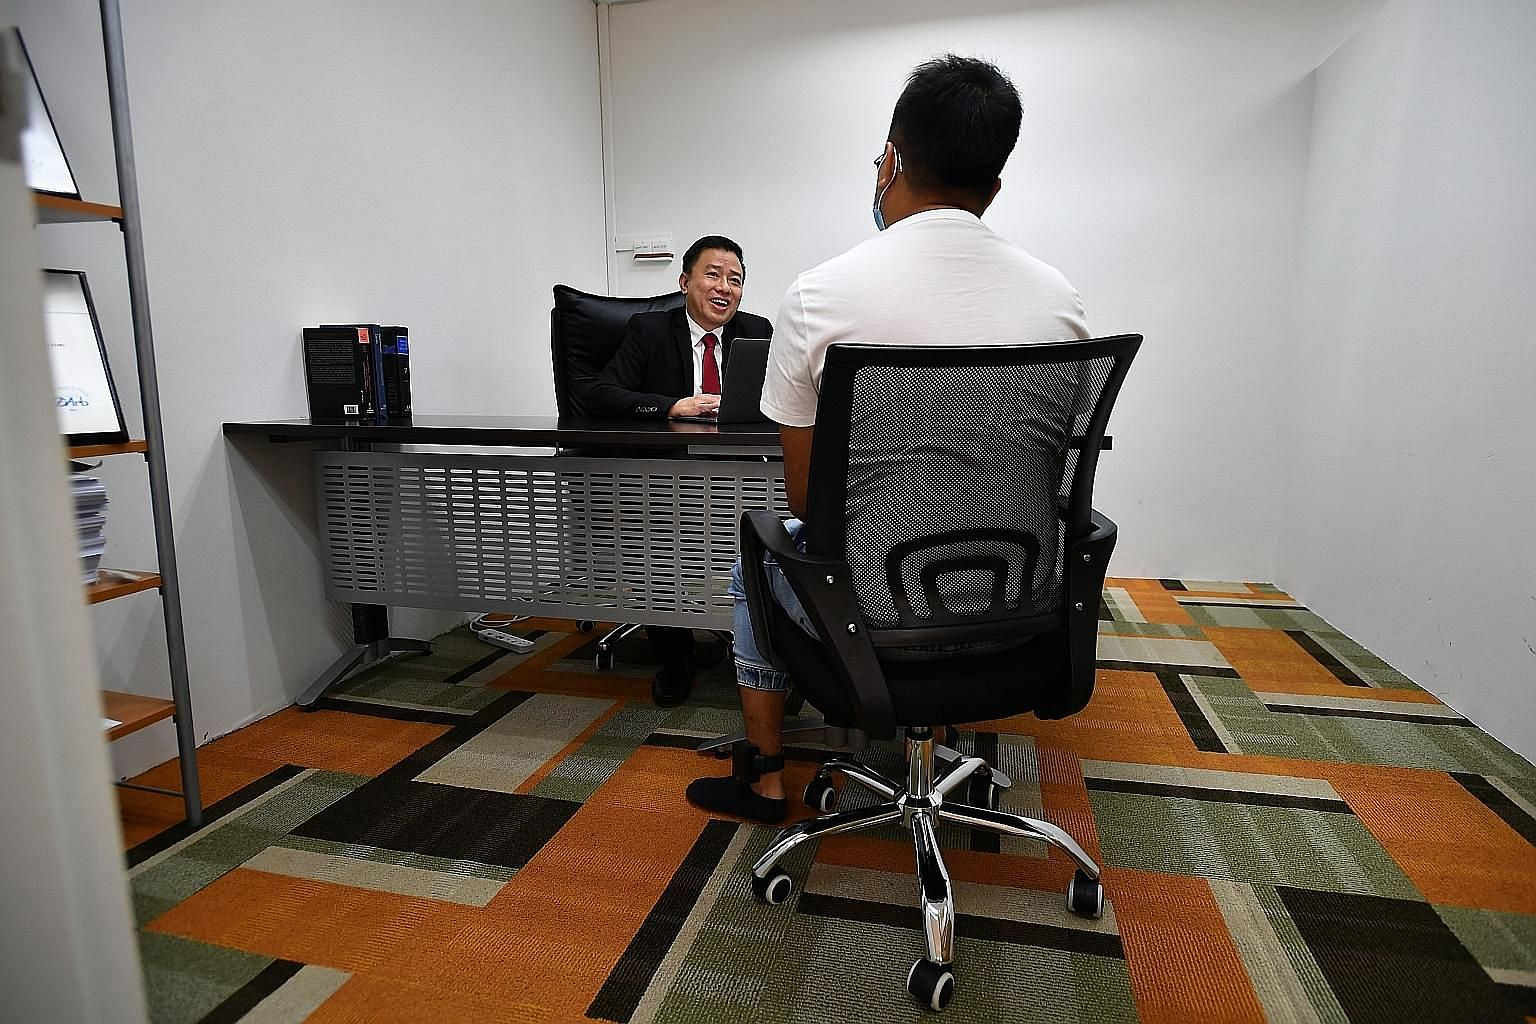 Lawyer Peter Ong Lip Cheng speaking to his client - who is wearing an electronic tag on his left ankle - at his office on Thursday. The rise in the number of accused persons who are released on reduced bail with e-tagging, as well as those placed on